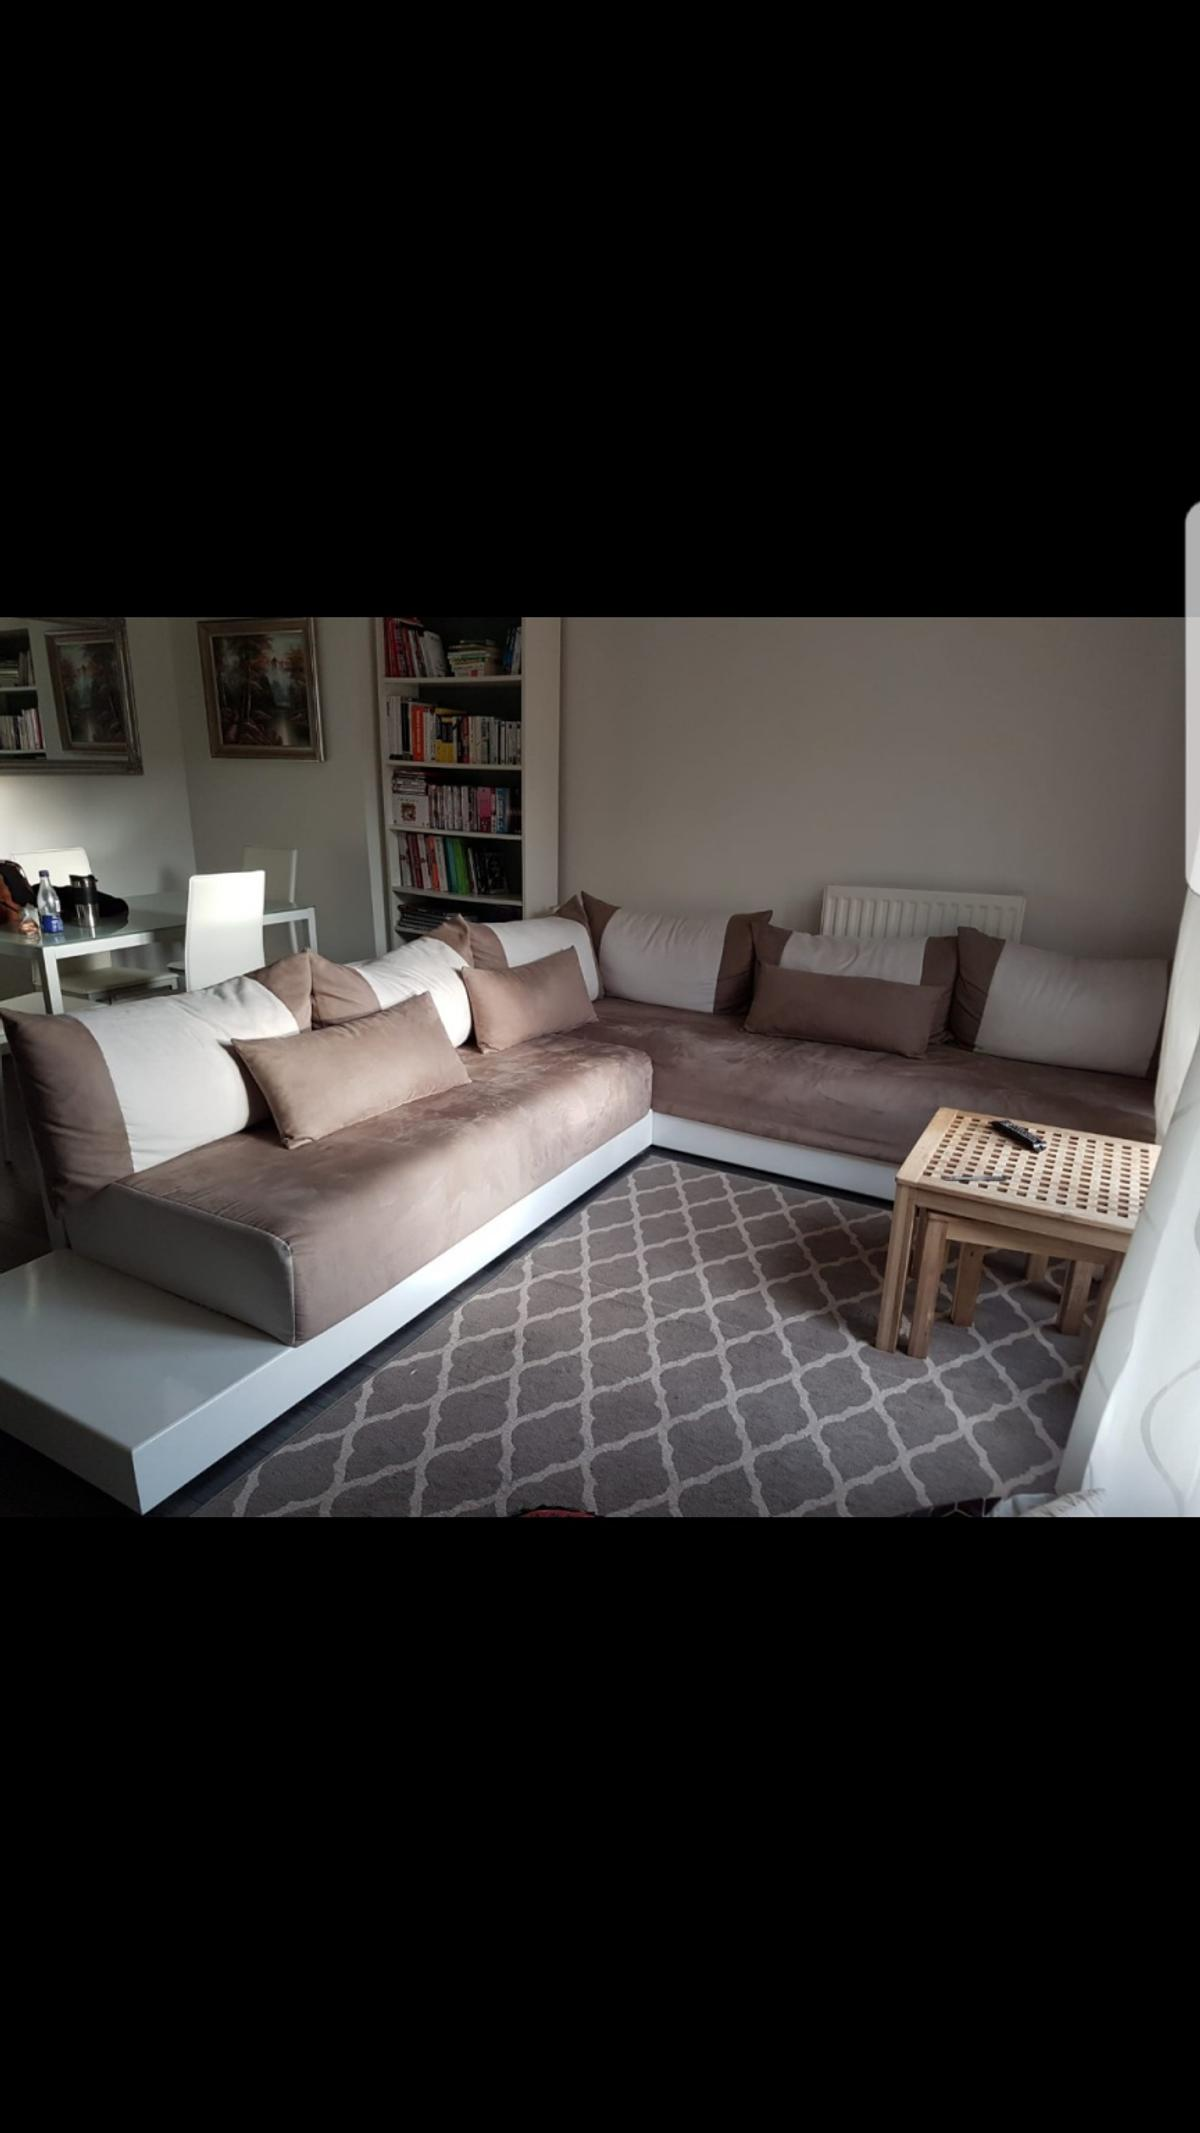 Modern Moroccan Living Room Sofa In Sw4 London For 700 00 For Sale Shpock